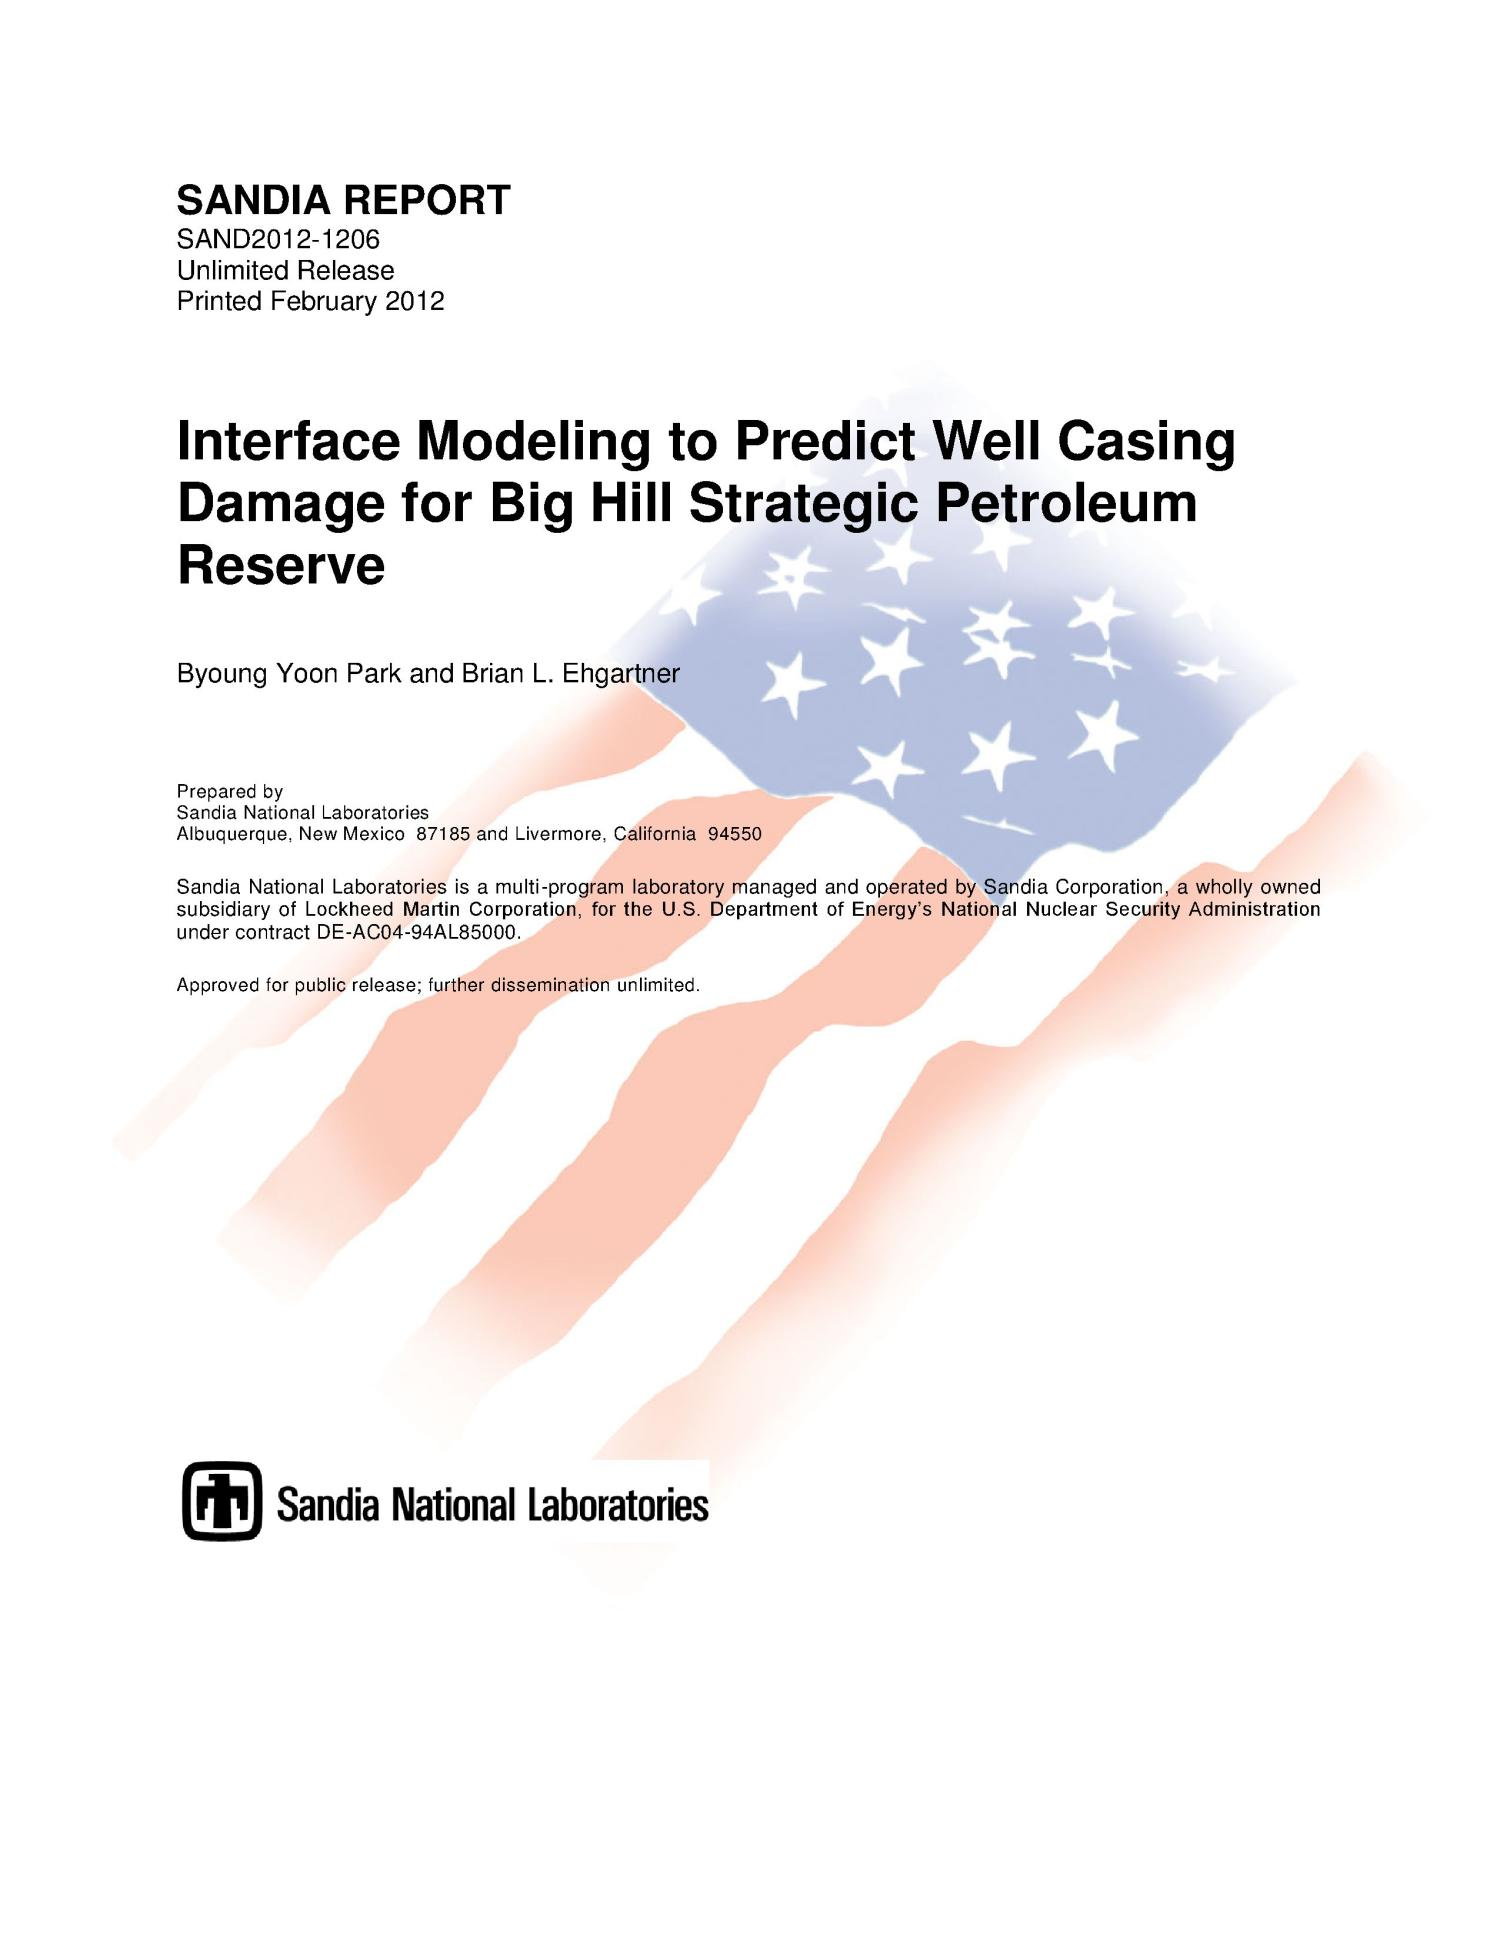 Interface modeling to predict well casing damage for big hill strategic petroleum reserve.                                                                                                      [Sequence #]: 1 of 49